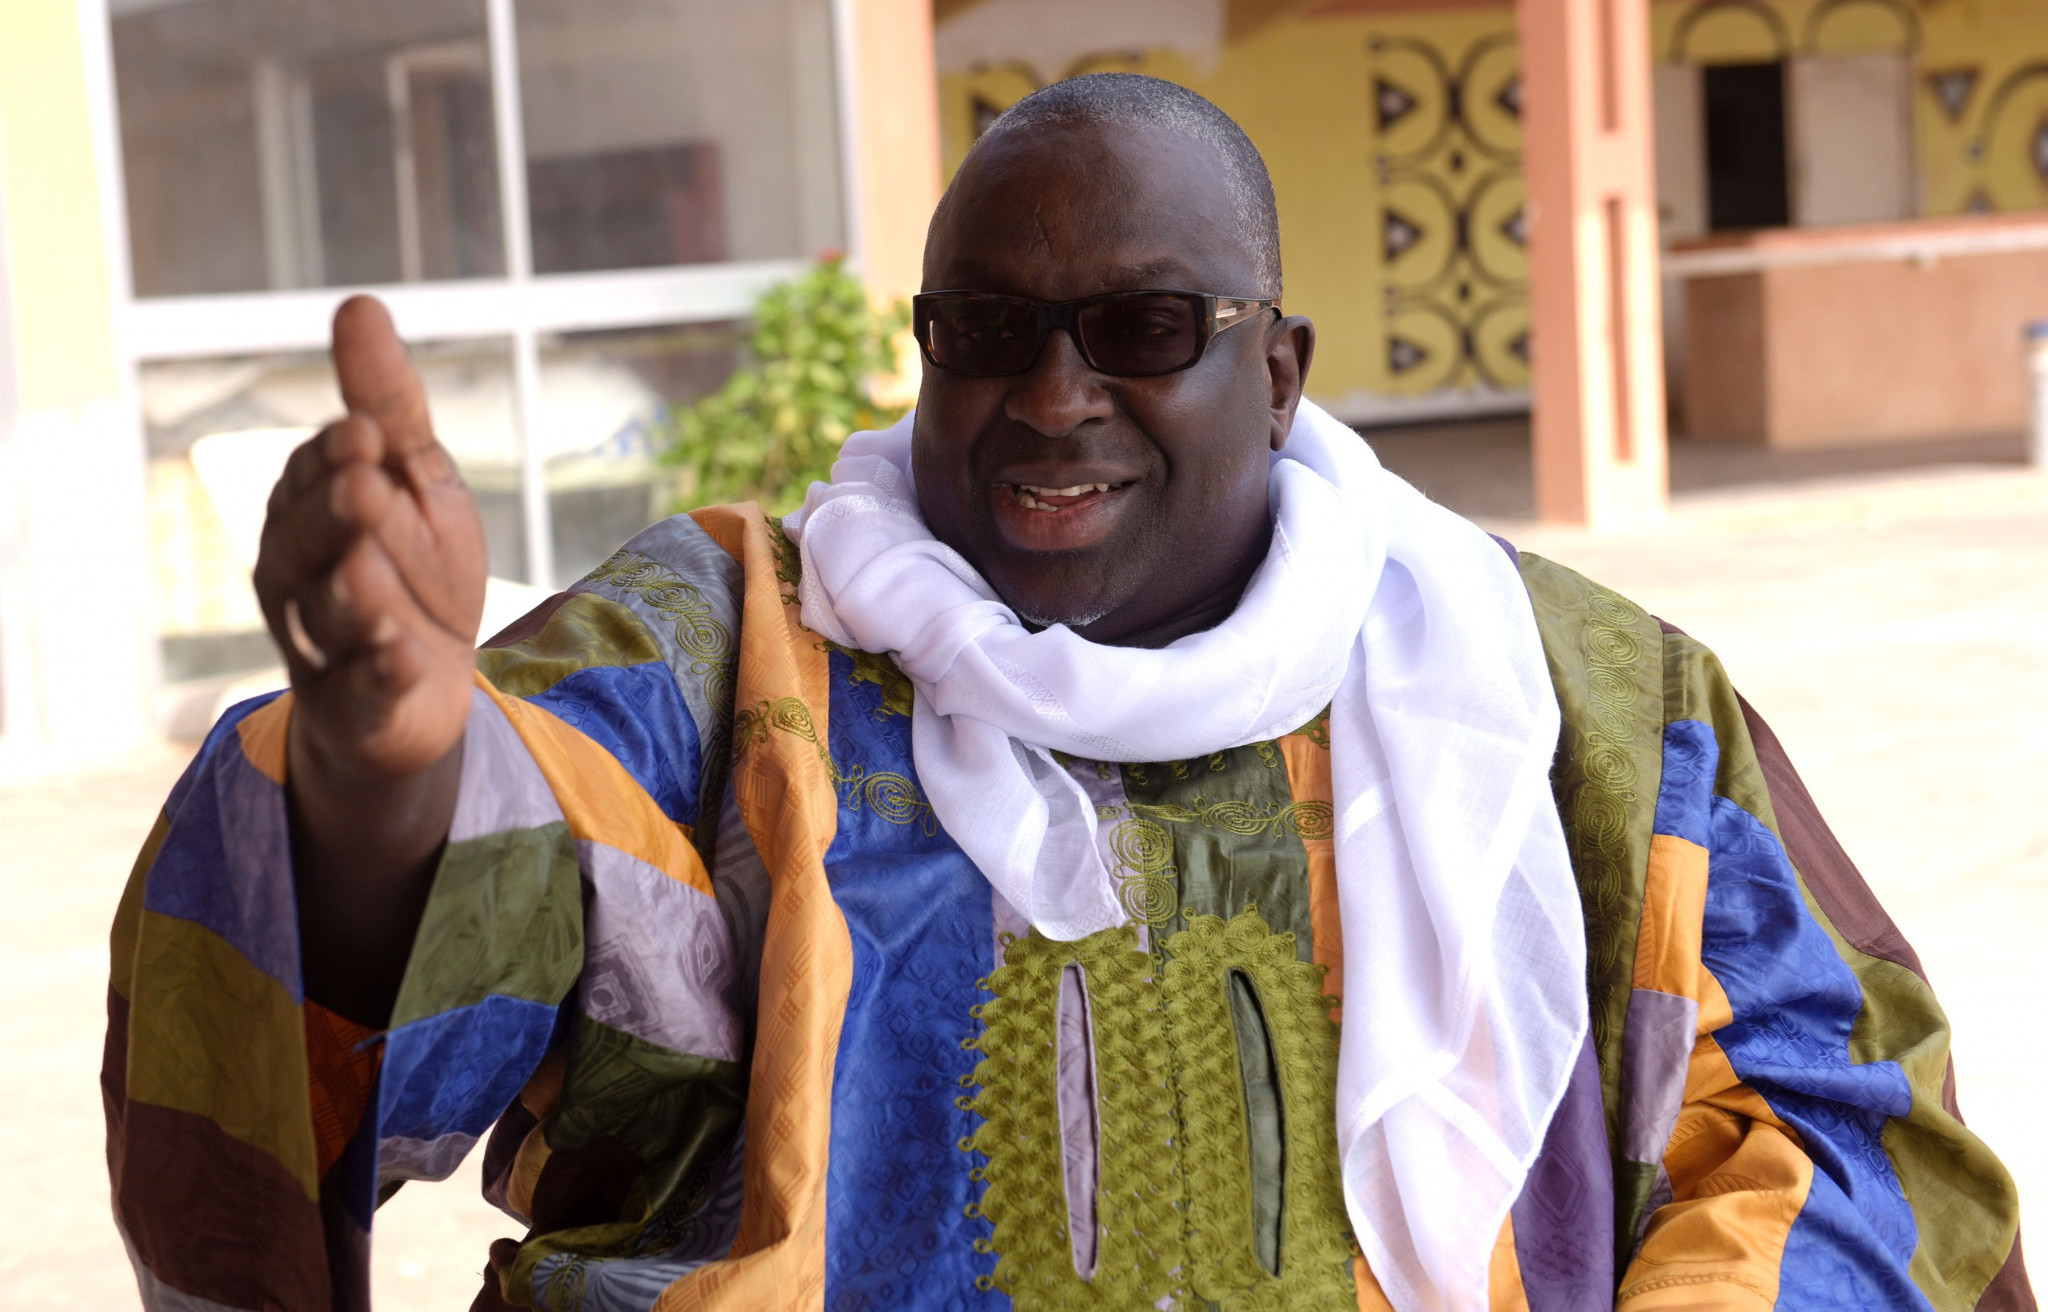 Papa Massata Diack, pictured, asked Tan Tong Han to lie, it is claimed ©Getty Images